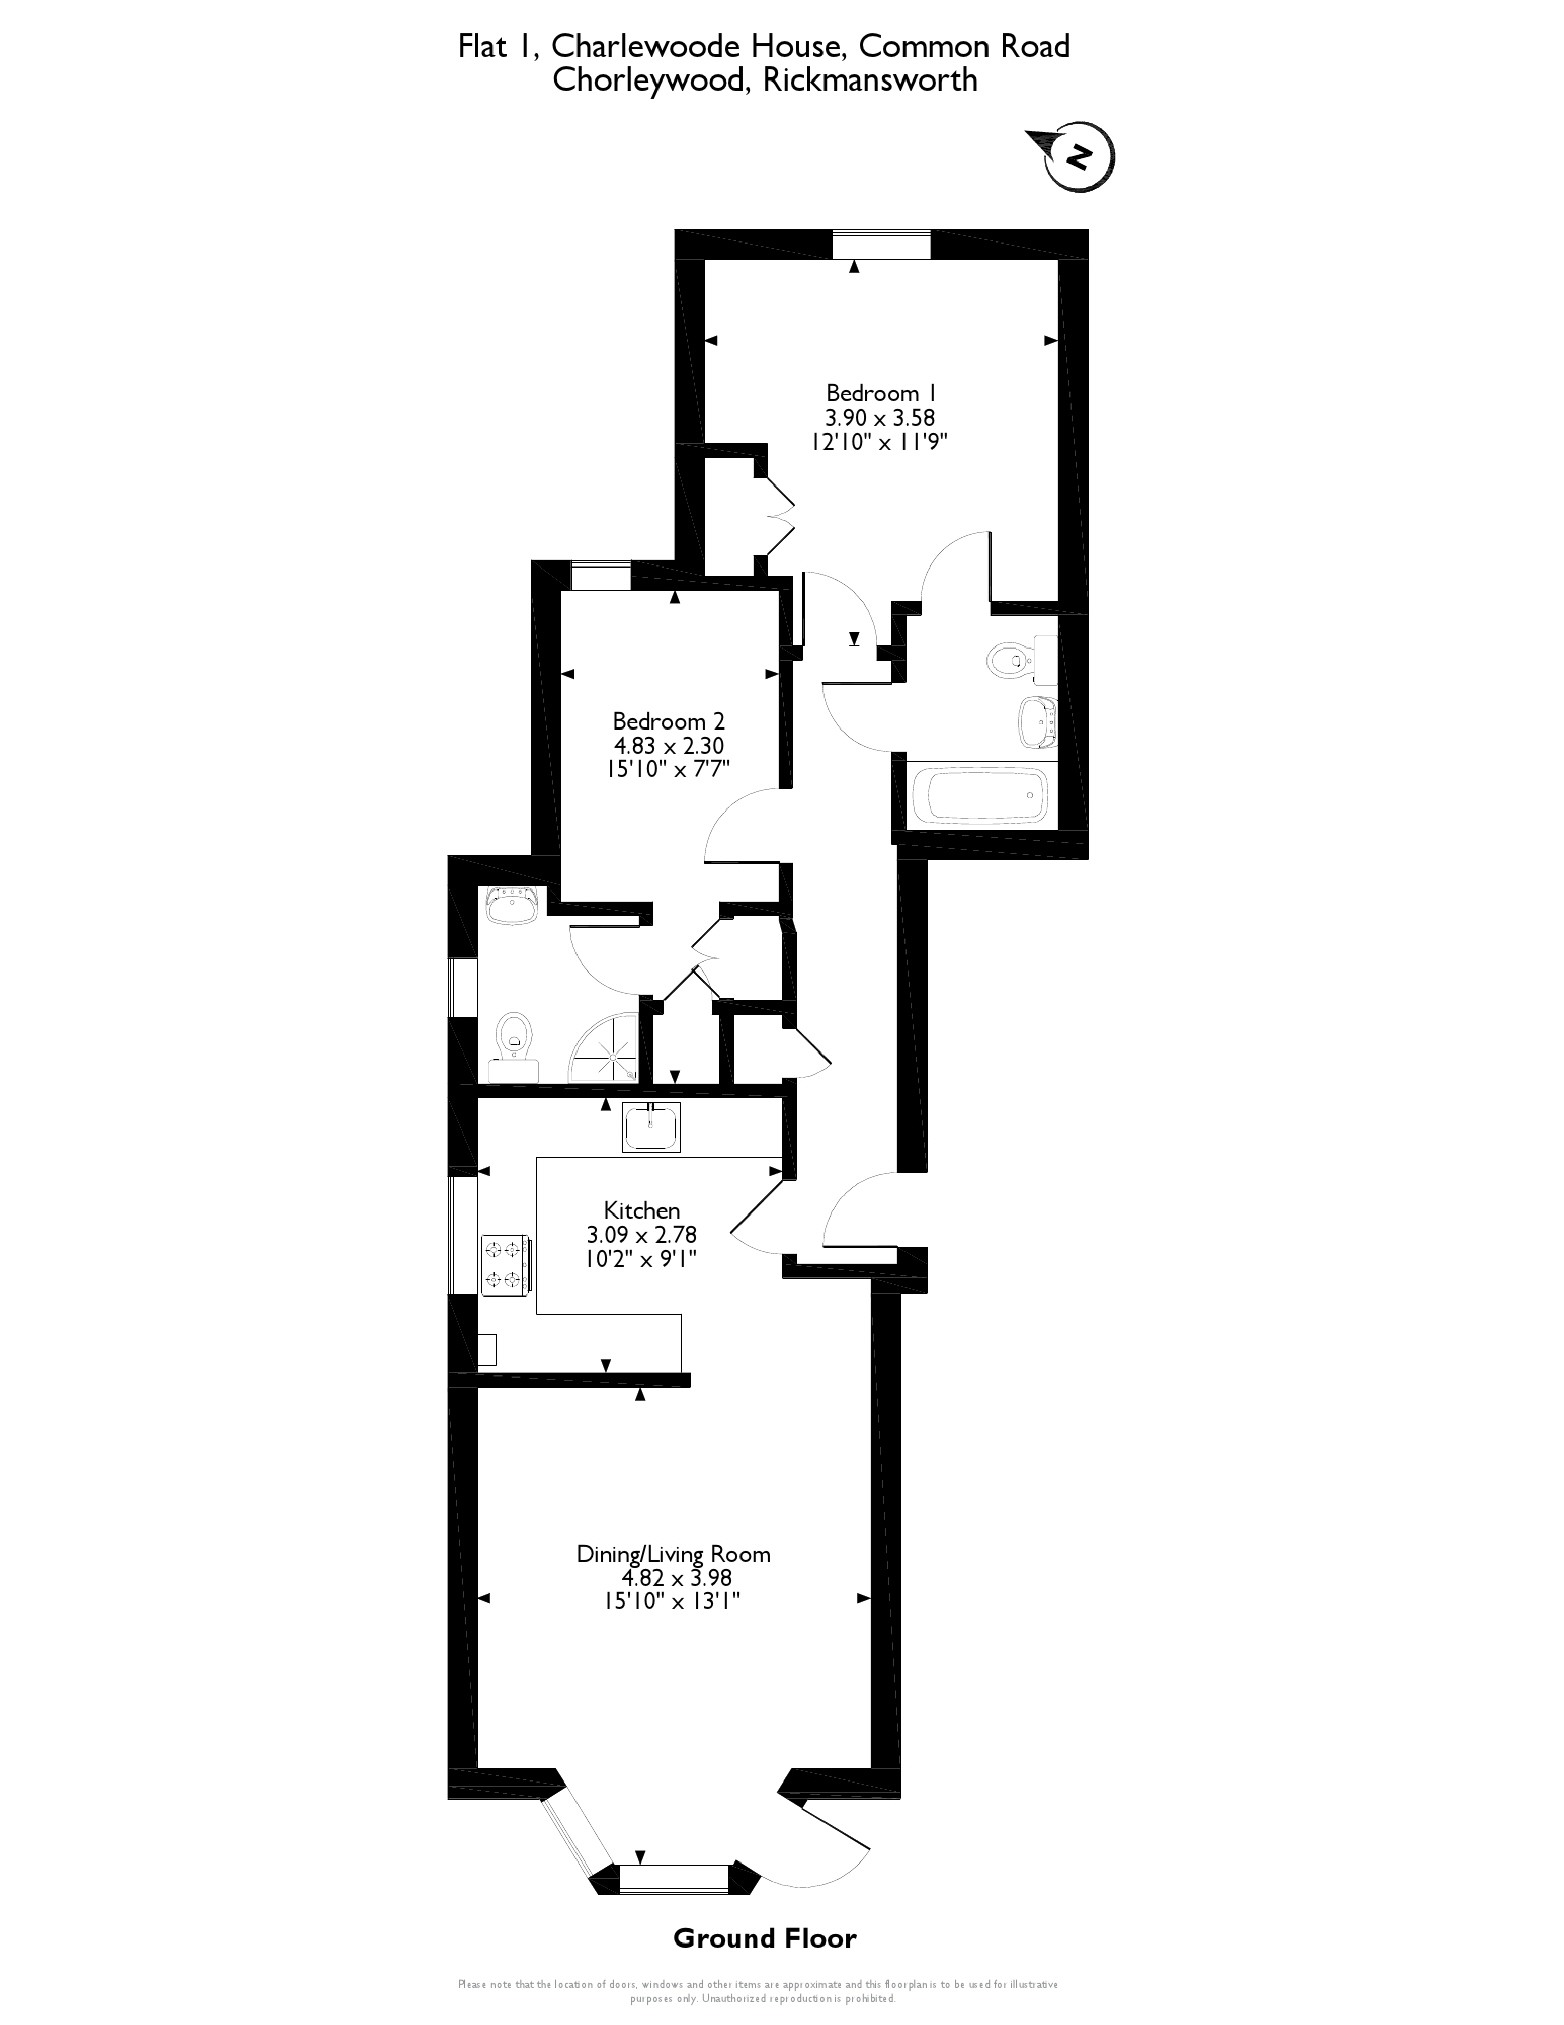 Electrical Wiring Diagram 3 Bedroom Flat Schematics House Layout Of The Best Building 2